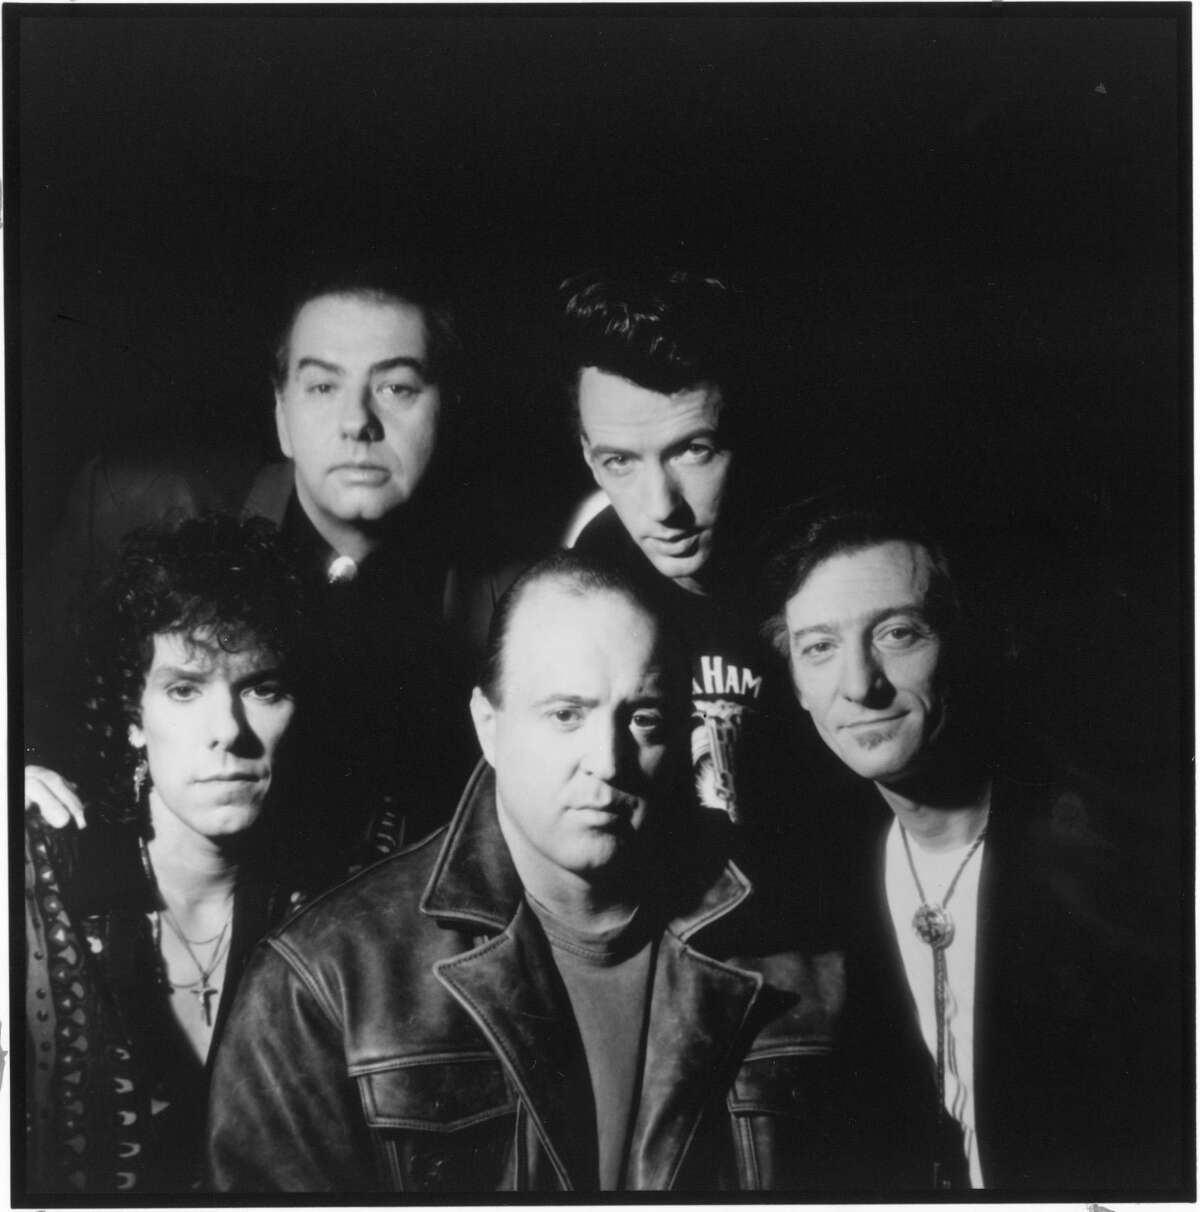 The Fabulous Thunderbirds will perform on July 21 at the free Hamden Arts Concert Series